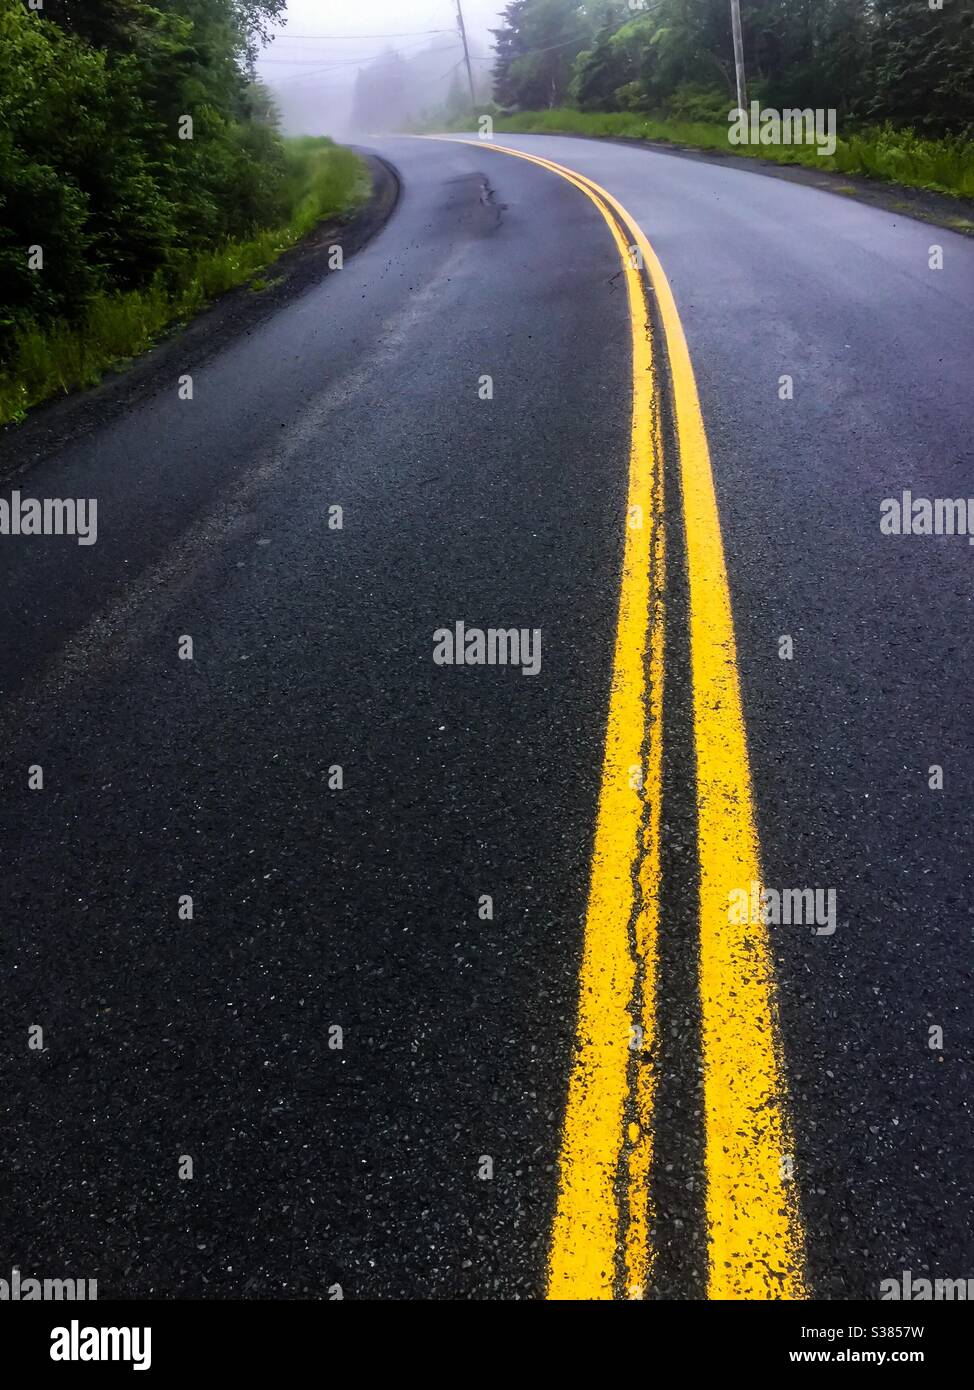 Road disappearing into the mist, Canada. Concepts: towards, lost horizon, solid lines, non-linear Stock Photo